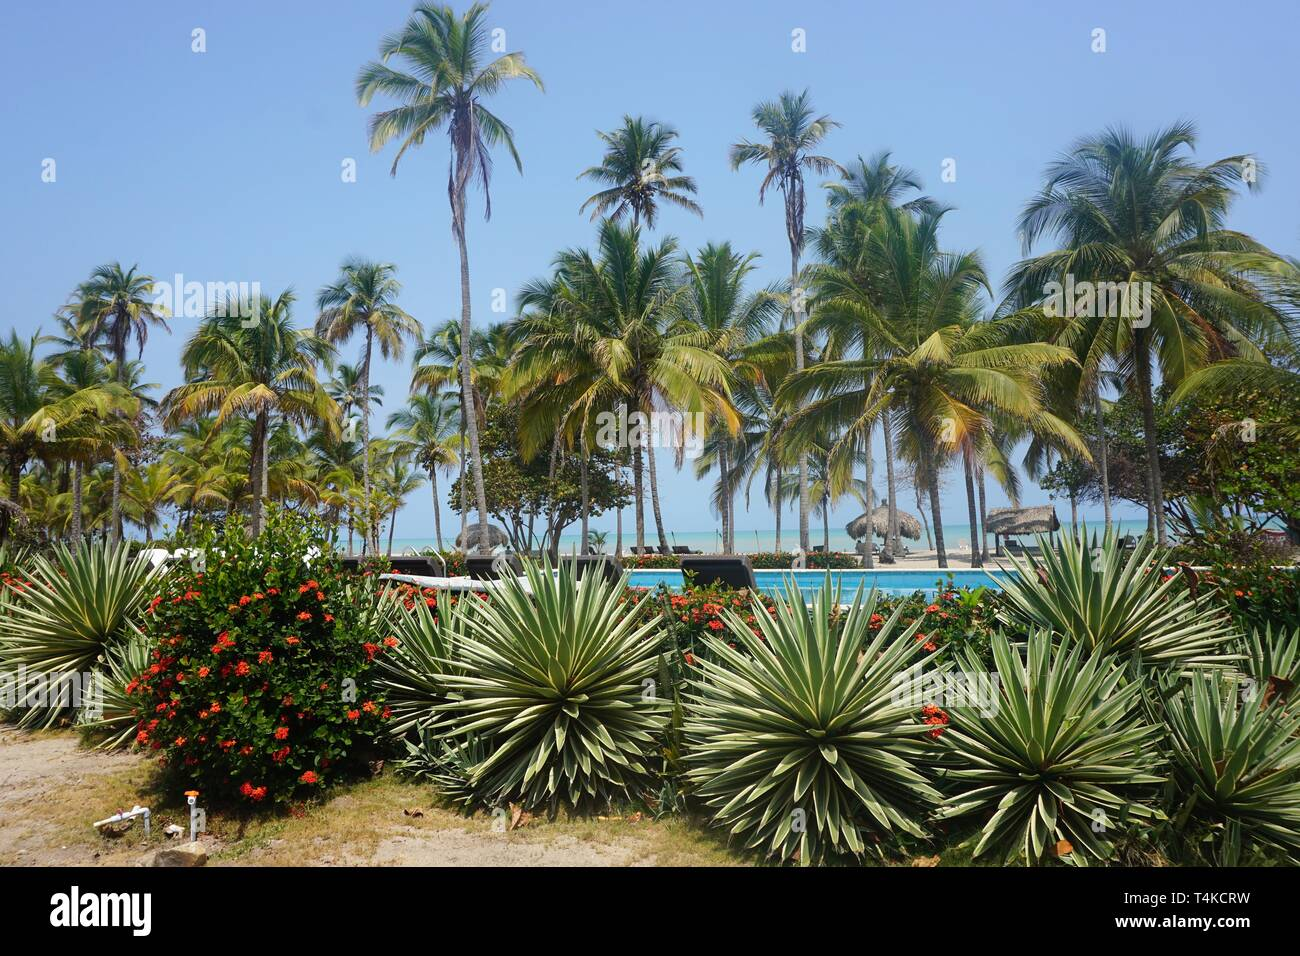 Picture Postcard View through Palm Trees towards the Caribbean Sea - Stock Image